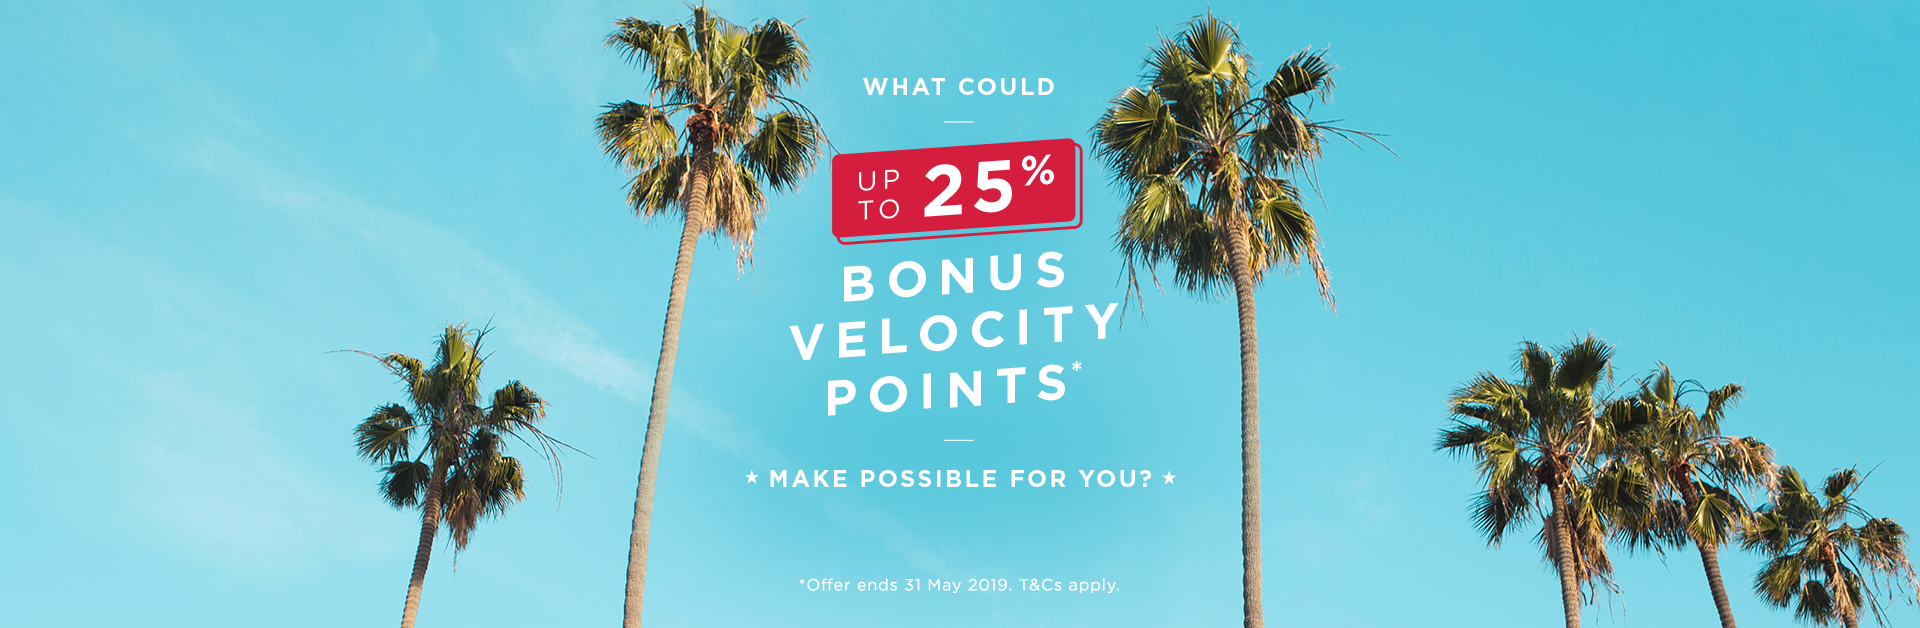 Transfer Bonus Campaign | Velocity Frequent Flyer